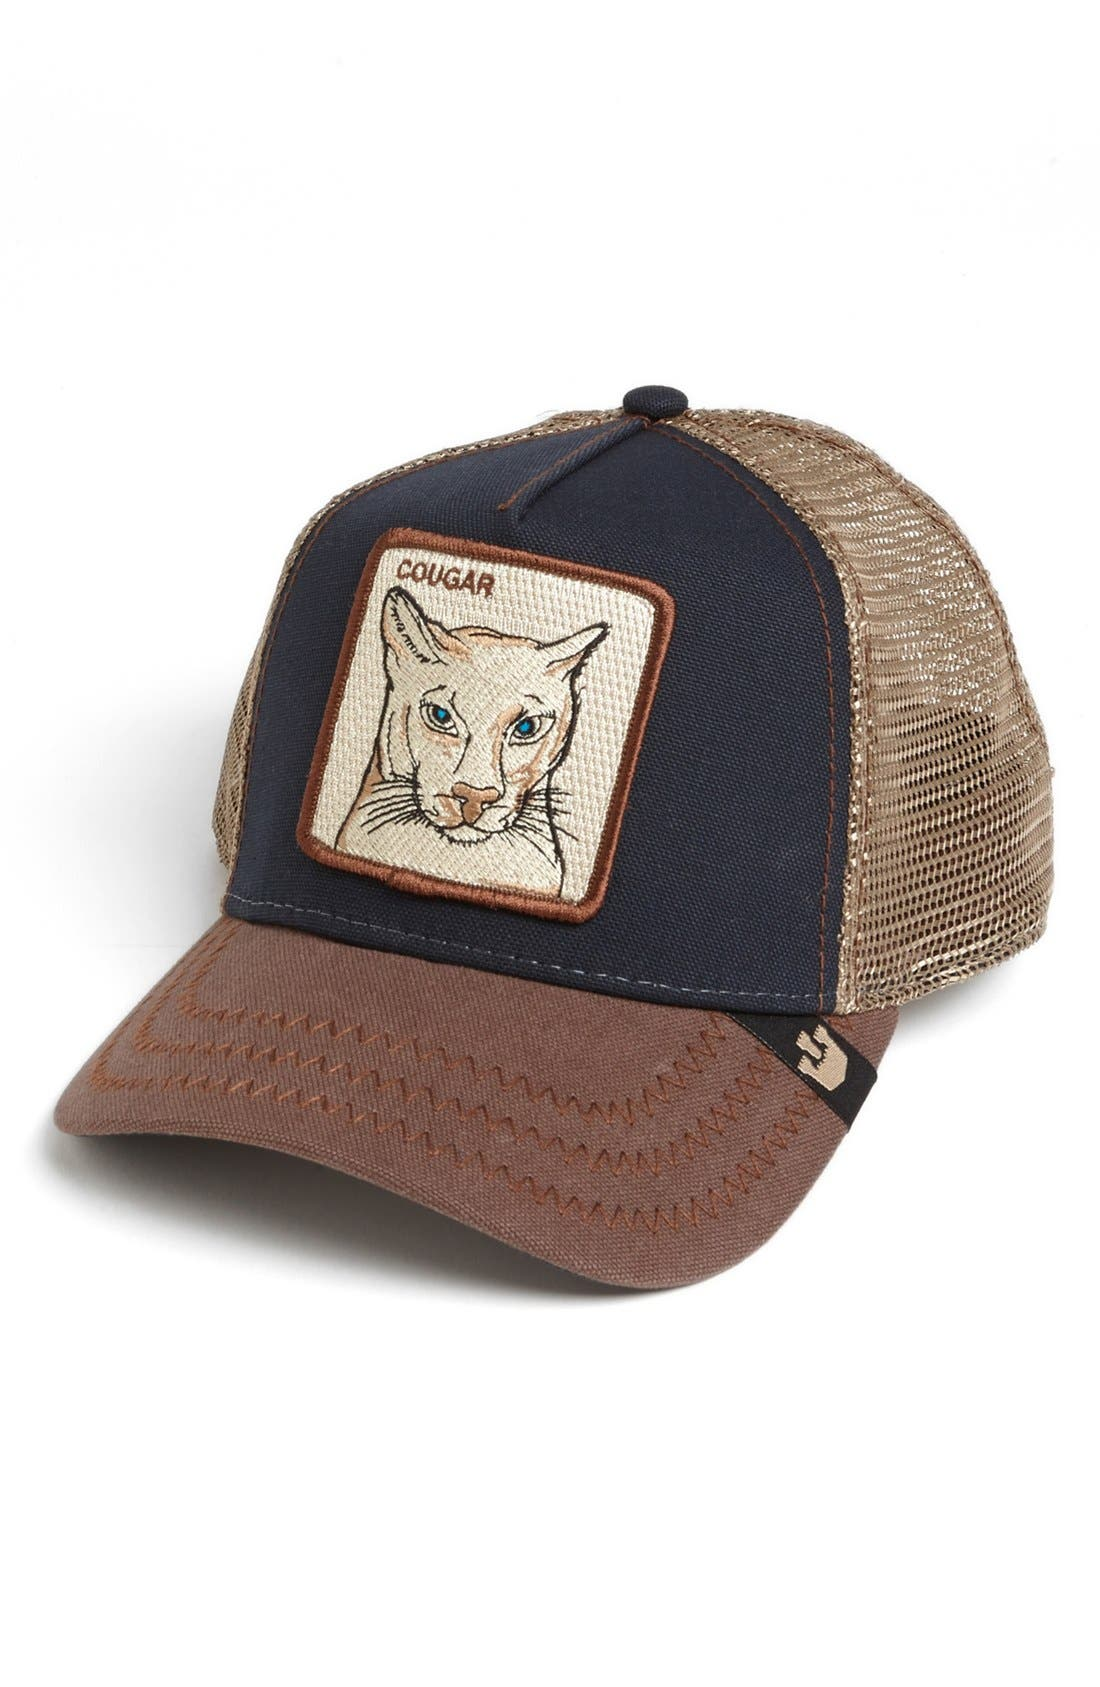 Alternate Image 1 Selected - Goorin Brothers 'Animal Farm - Cougar' Trucker Hat